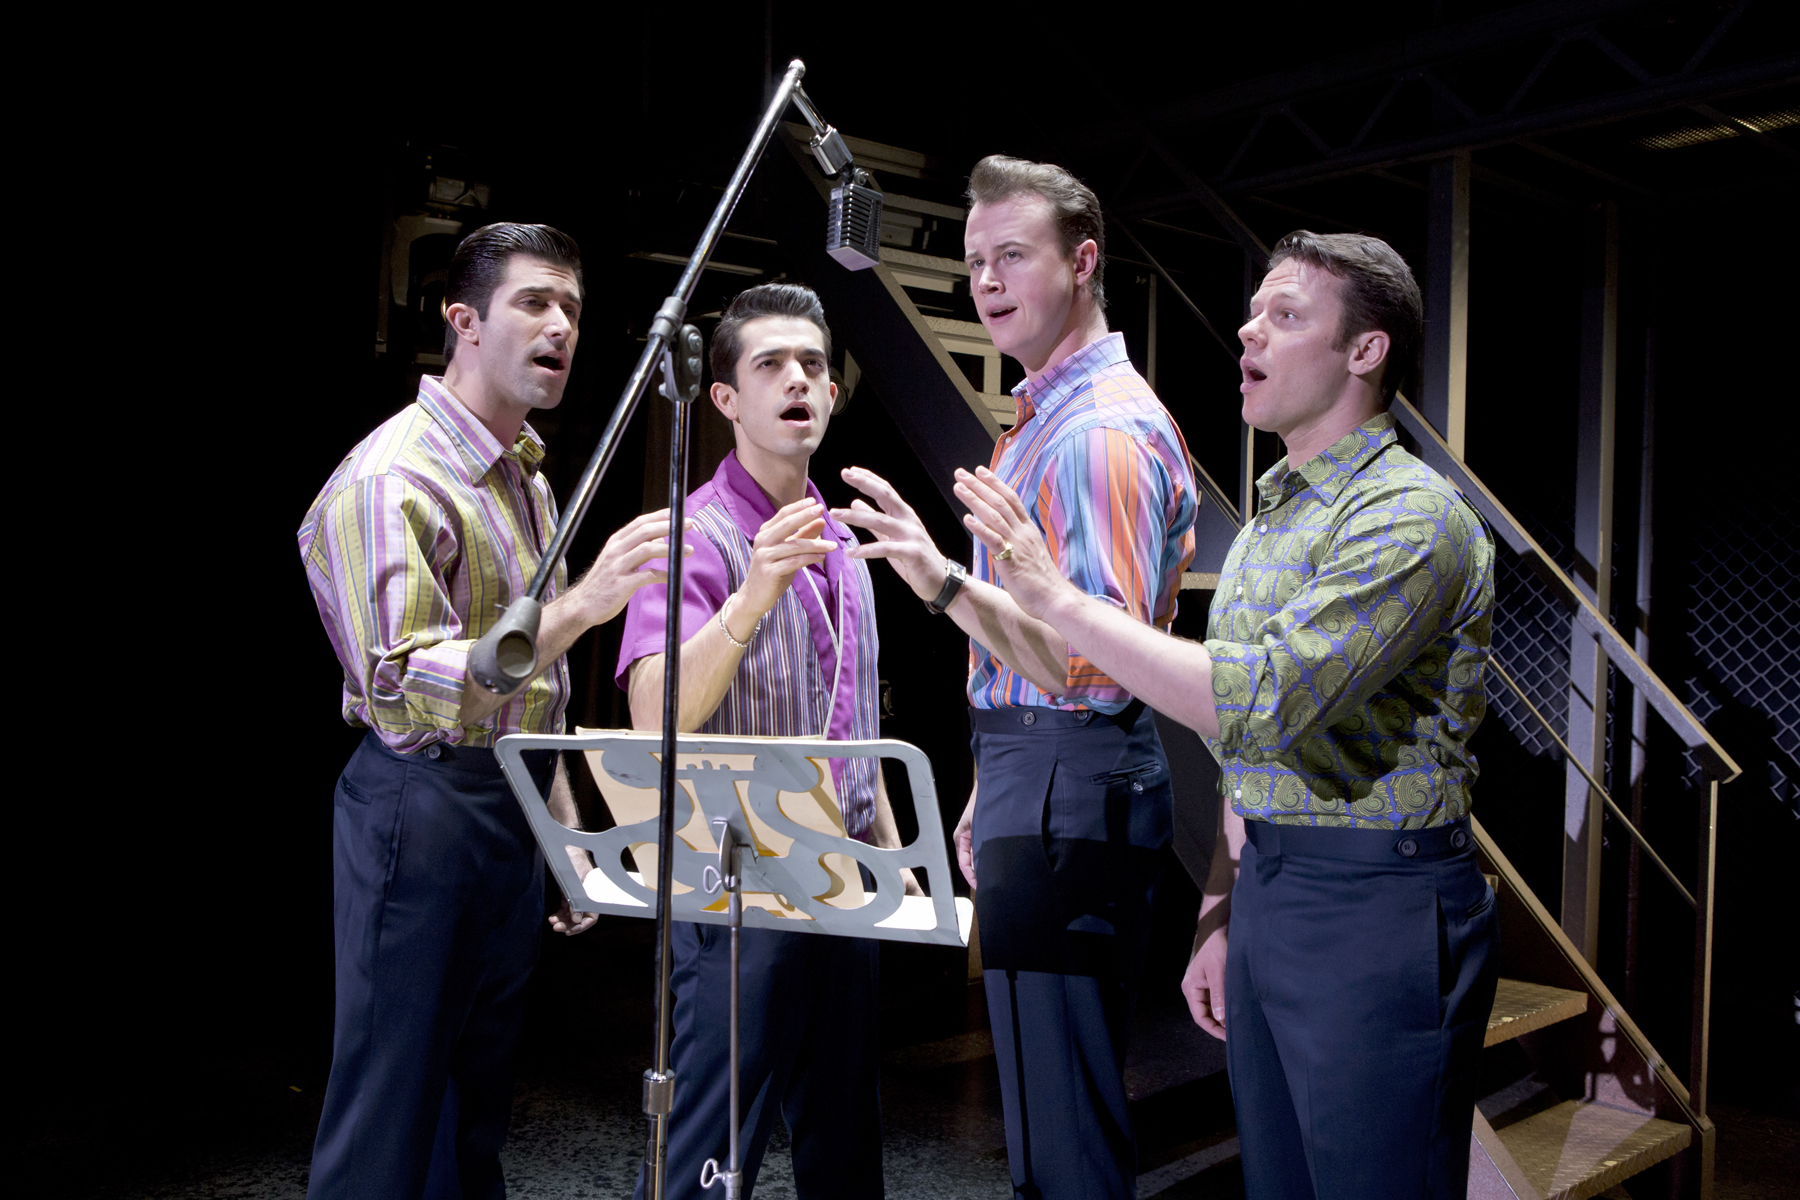 We carry Jersey Boys Fort Worth tickets, some of the best seats available, including front row, and many of our Jersey Boys Fort Worth tickets are fairly cheap and a good bargain. Most of our inventory are sold out theater tickets. You can order your discount Jersey Boys theatre tickets through the TicketTriangle website 24 hours a day 7 days a week.